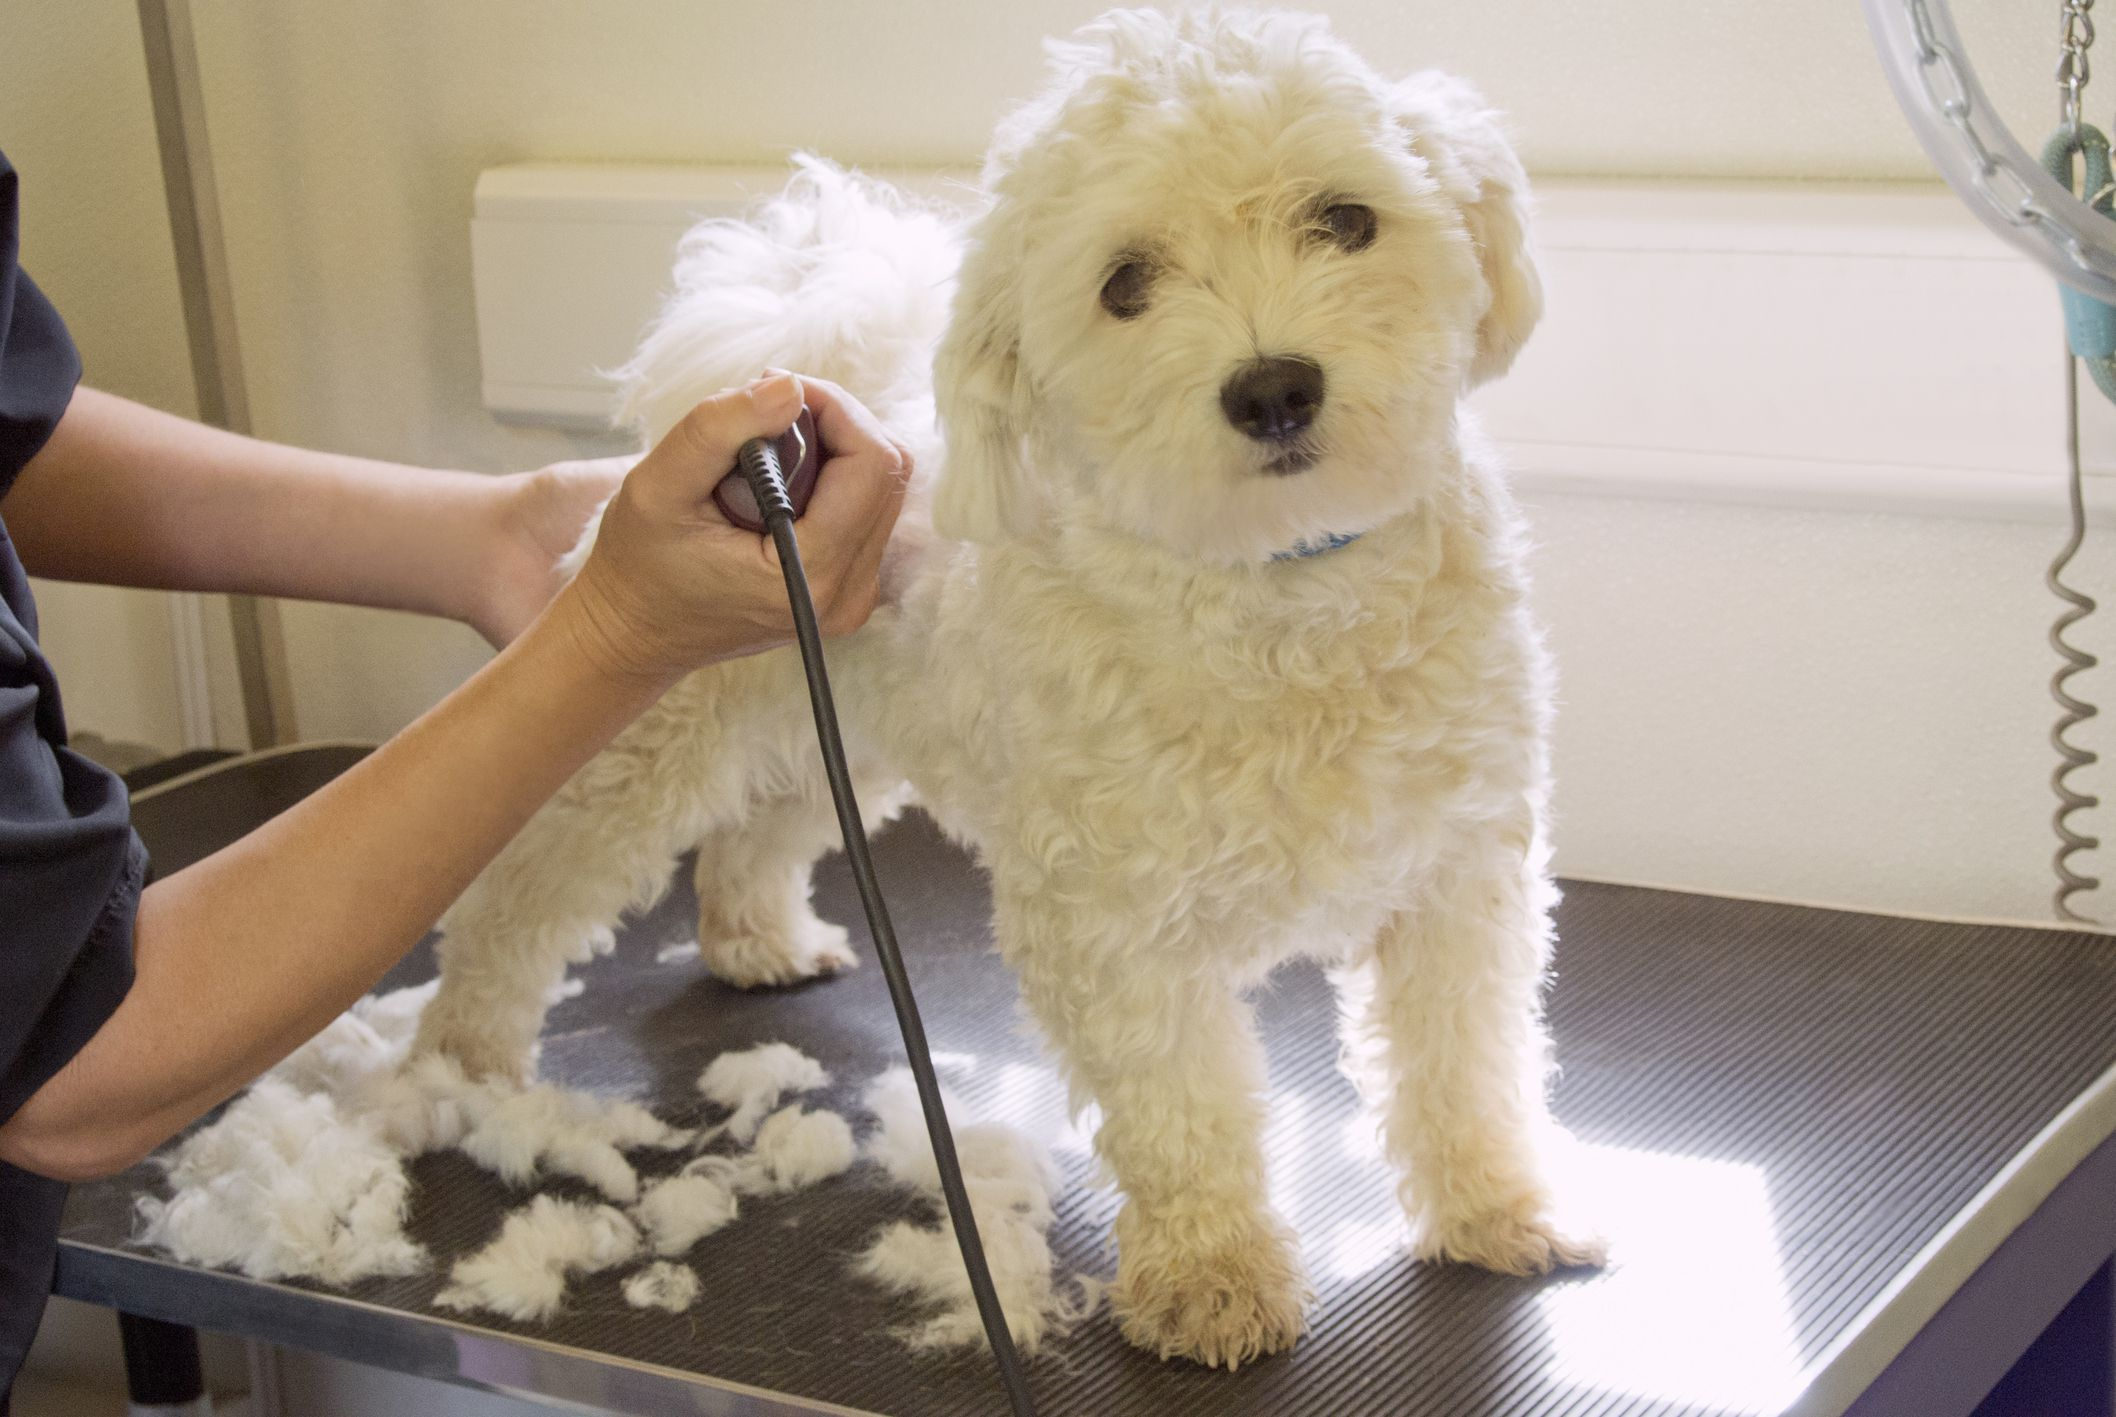 Dog grooming with a professional clipper